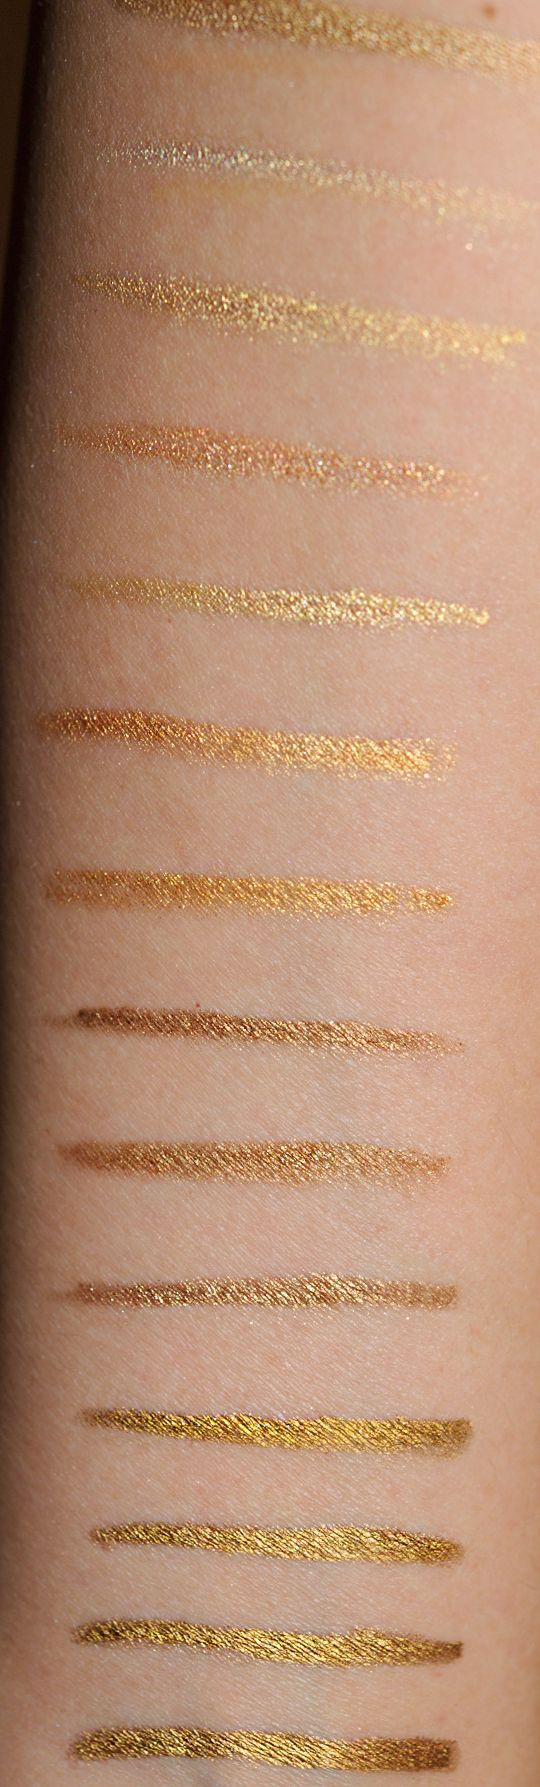 Gold Eyeliners: Swatches, Dupes, and Comparisons...I miss L'Oreal HIP Gold Chrome, used to wear it all the time but can't find it anywhere anymore!!!